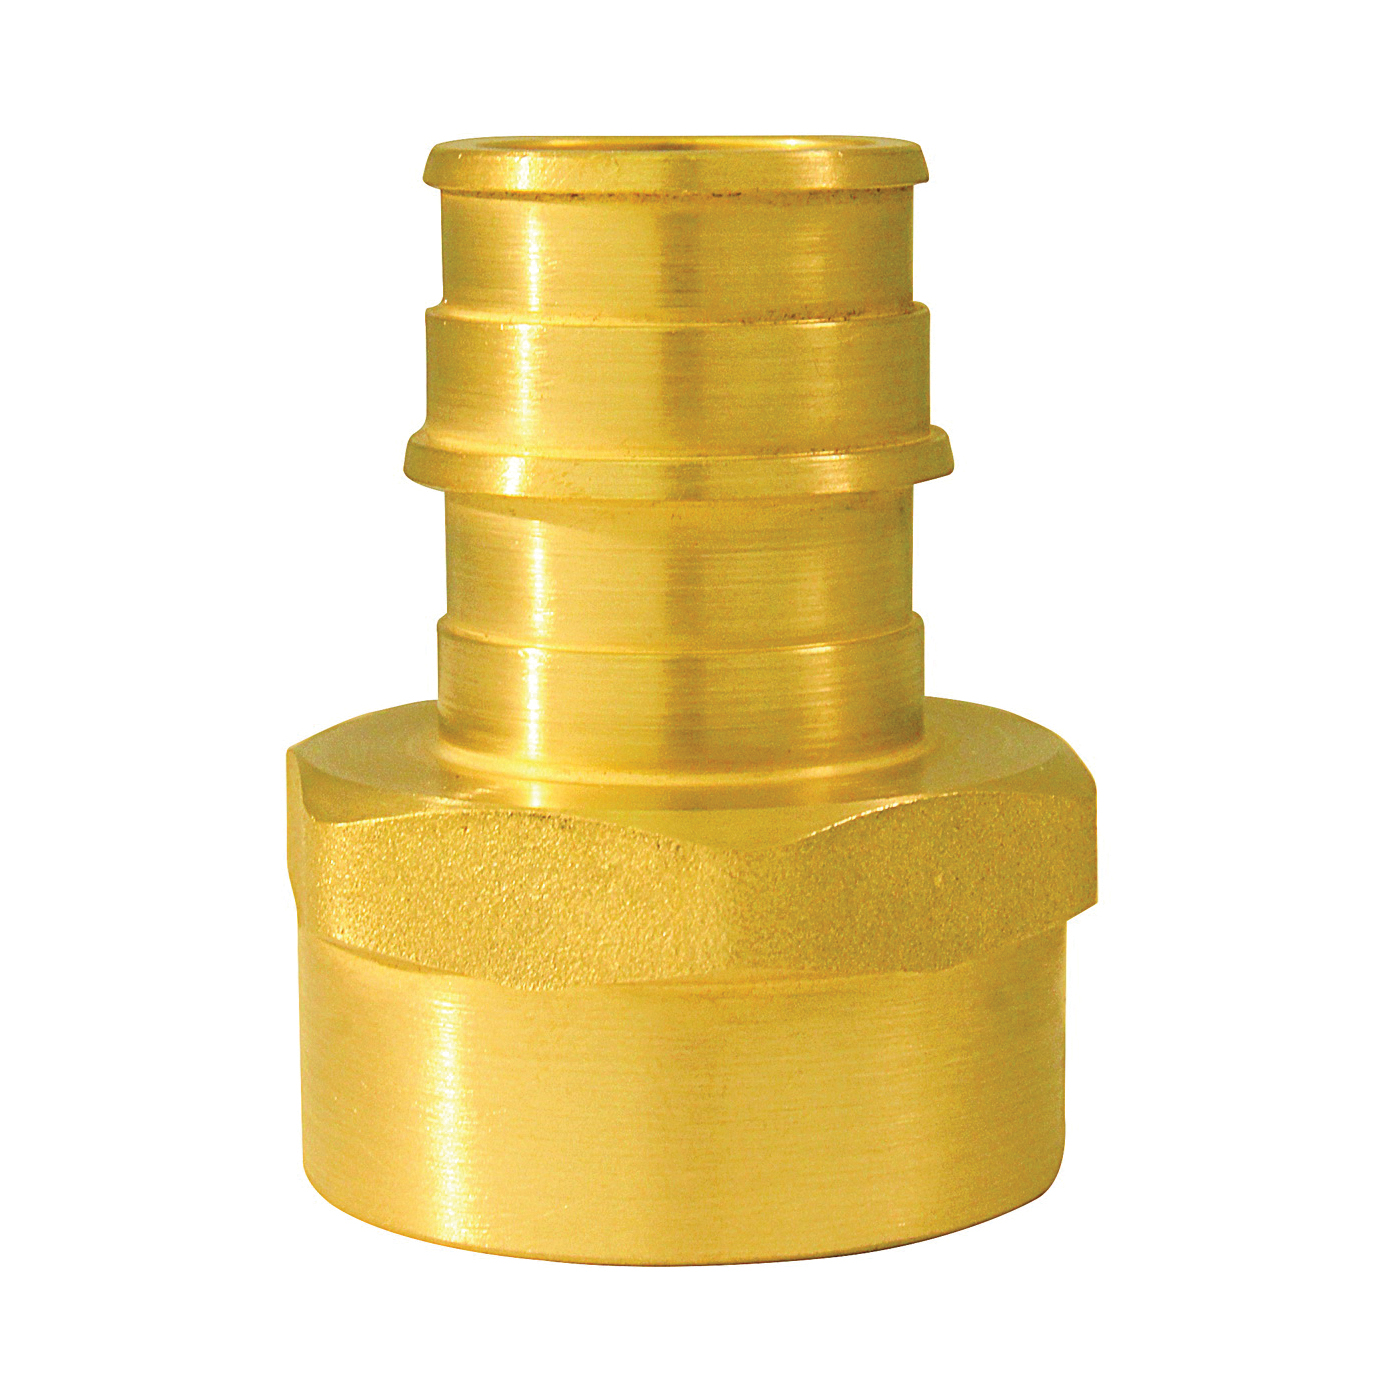 Picture of Apollo ExpansionPEX EPXFA3410PK Pipe Adapter, 3/4 in, Barb x FNPT, Brass, 200 psi Pressure